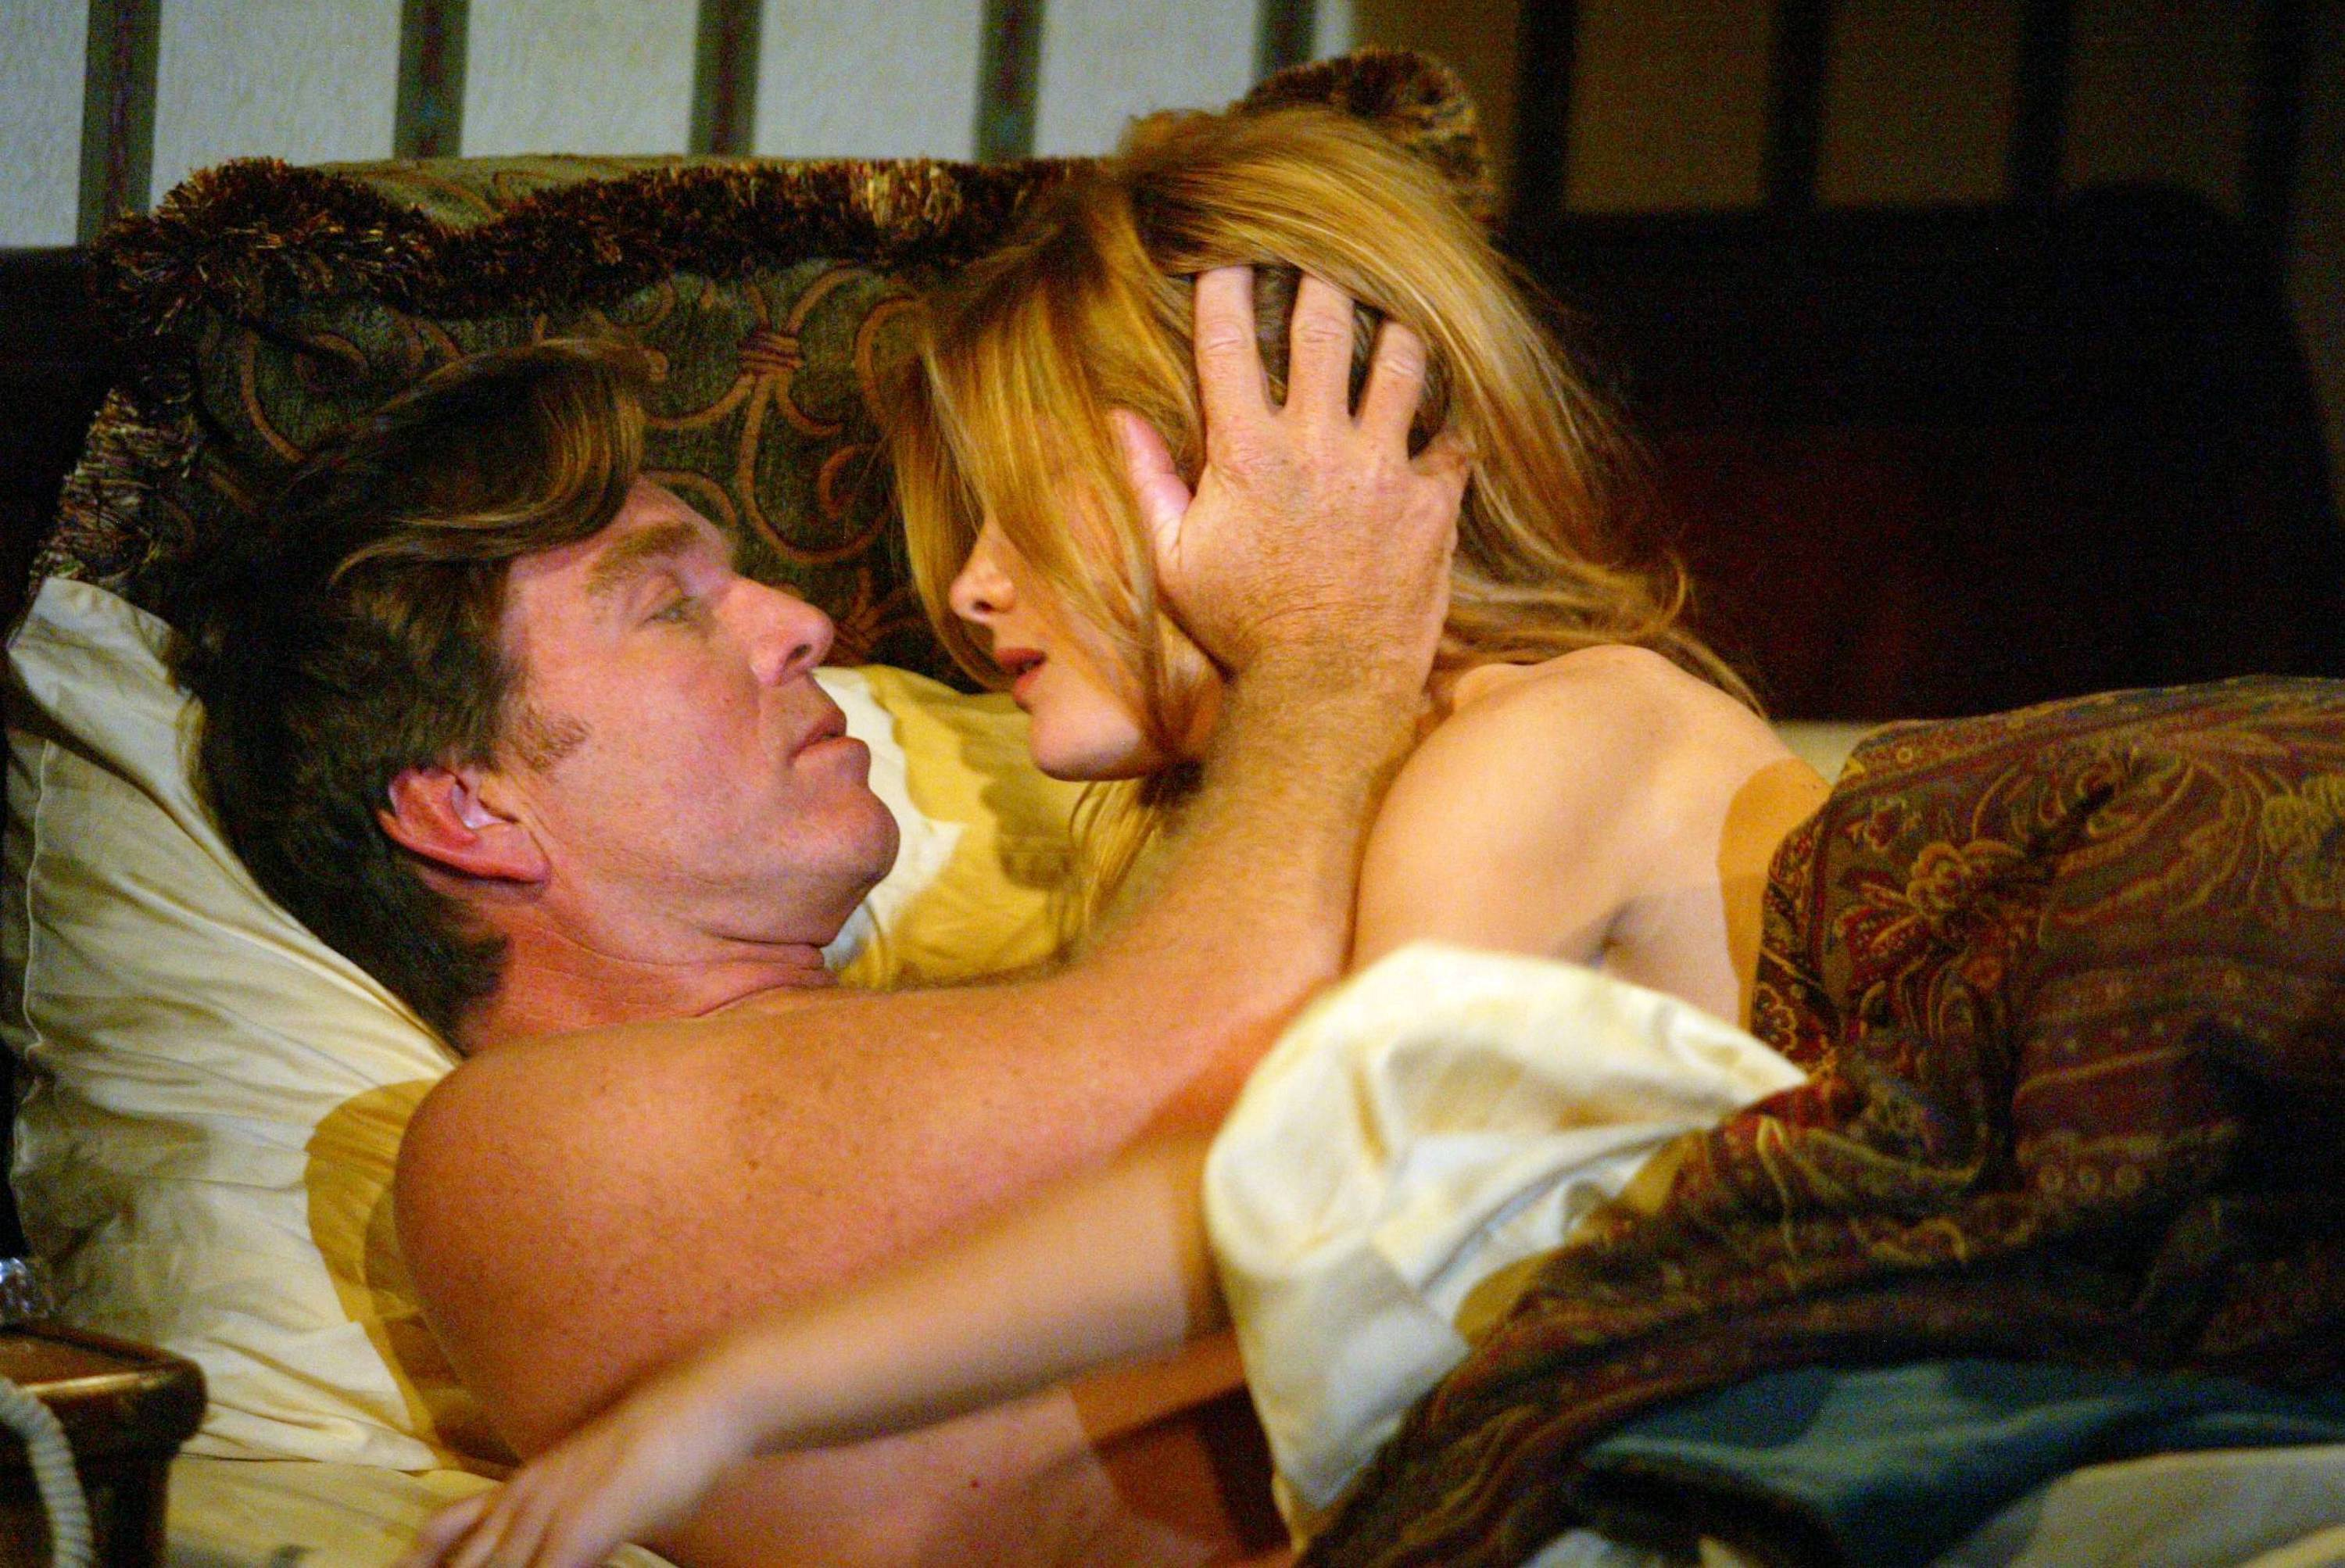 """Peter Bergman and Michelle Stafford """"The Young and the Restless"""" Set CBS Television City 8/26/03 ©Aaron Montgomery/JPI 310-657-9661 Episode# 7729"""